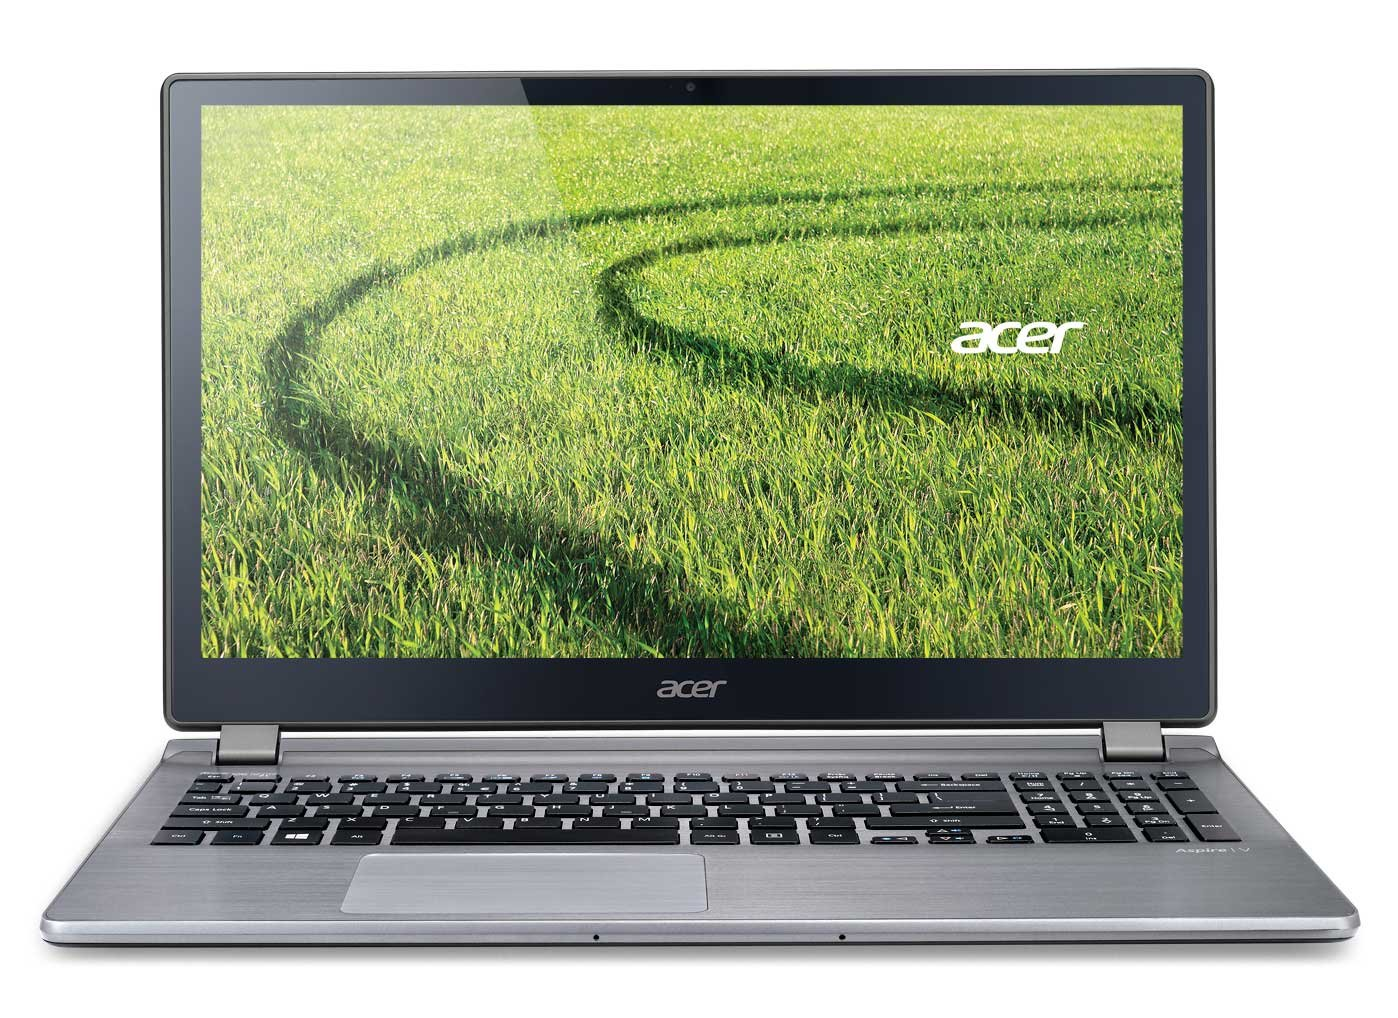 Acer Aspire V5-573P Intel Smart Connect Last